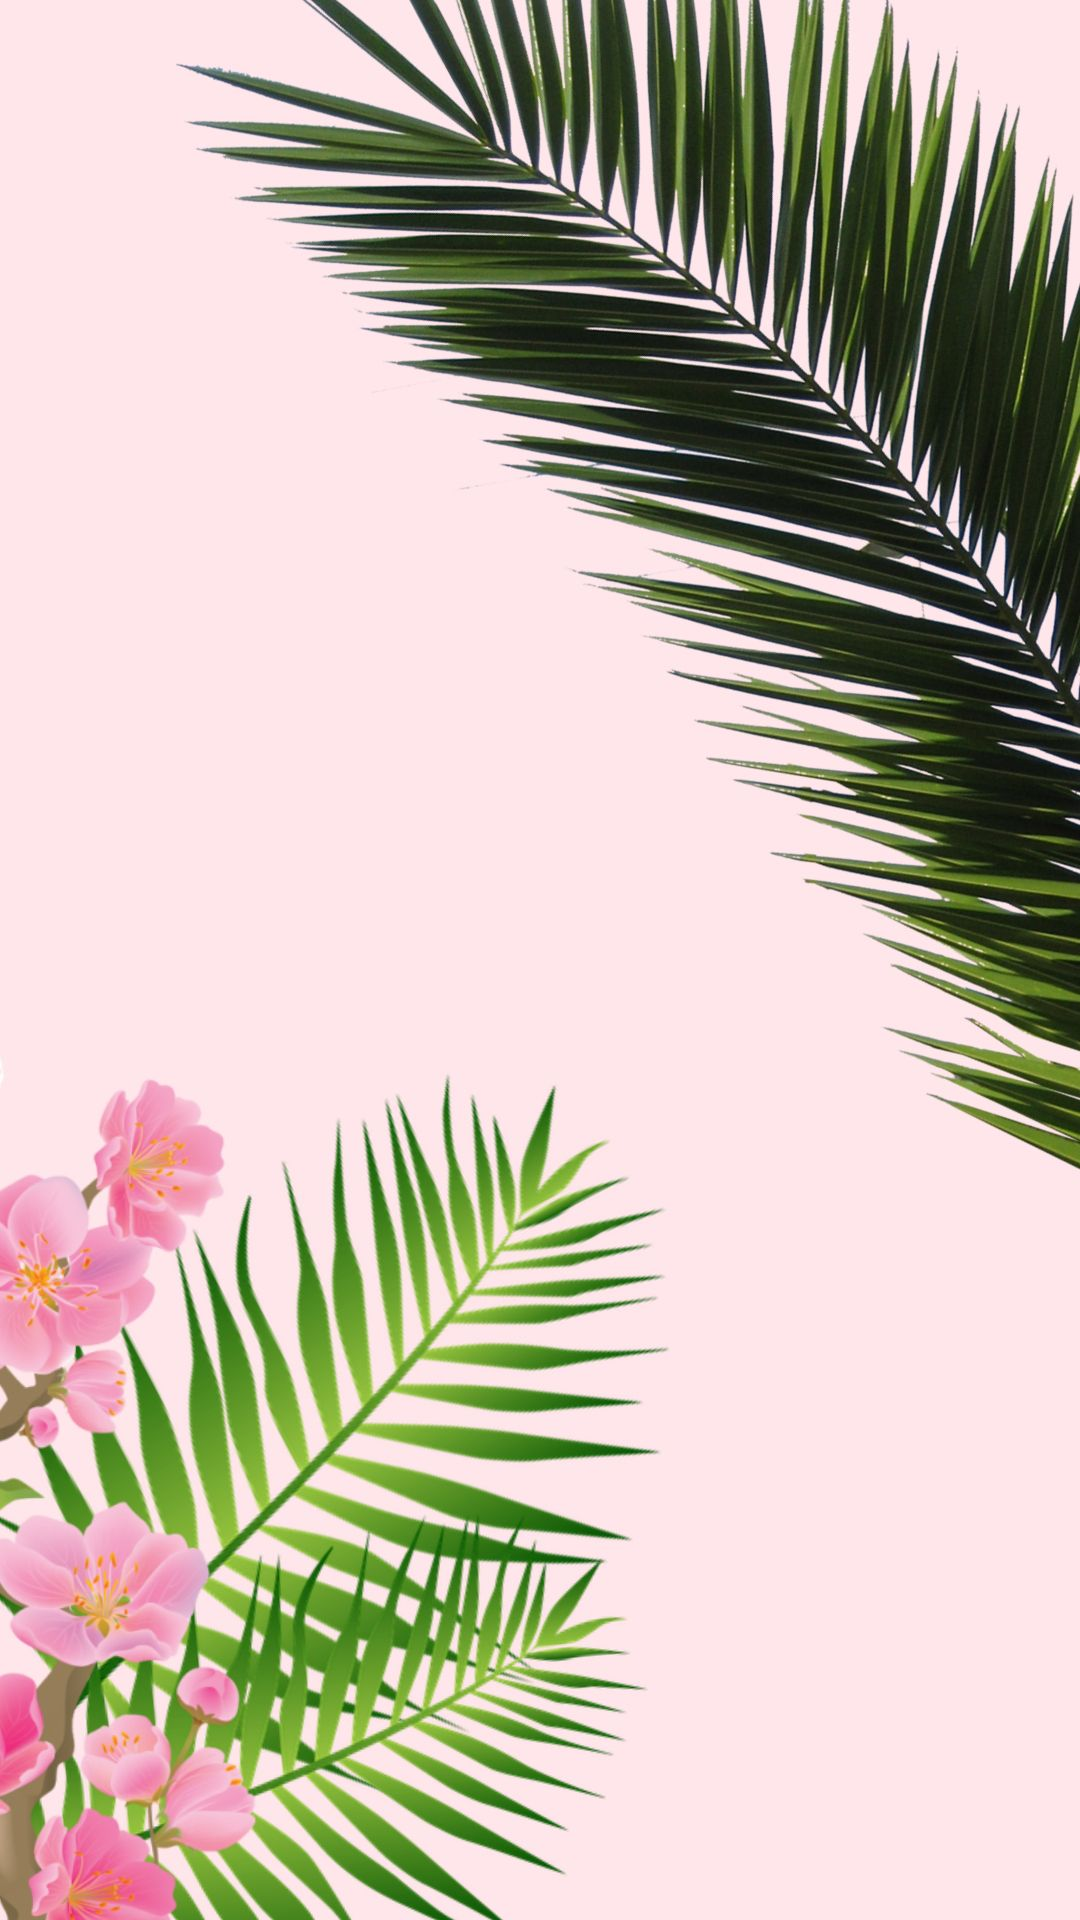 Tropical Wallpaper Iphone Background Pink Vintage Pastel Wallpaper Iphone Kertas Dinding Tropis